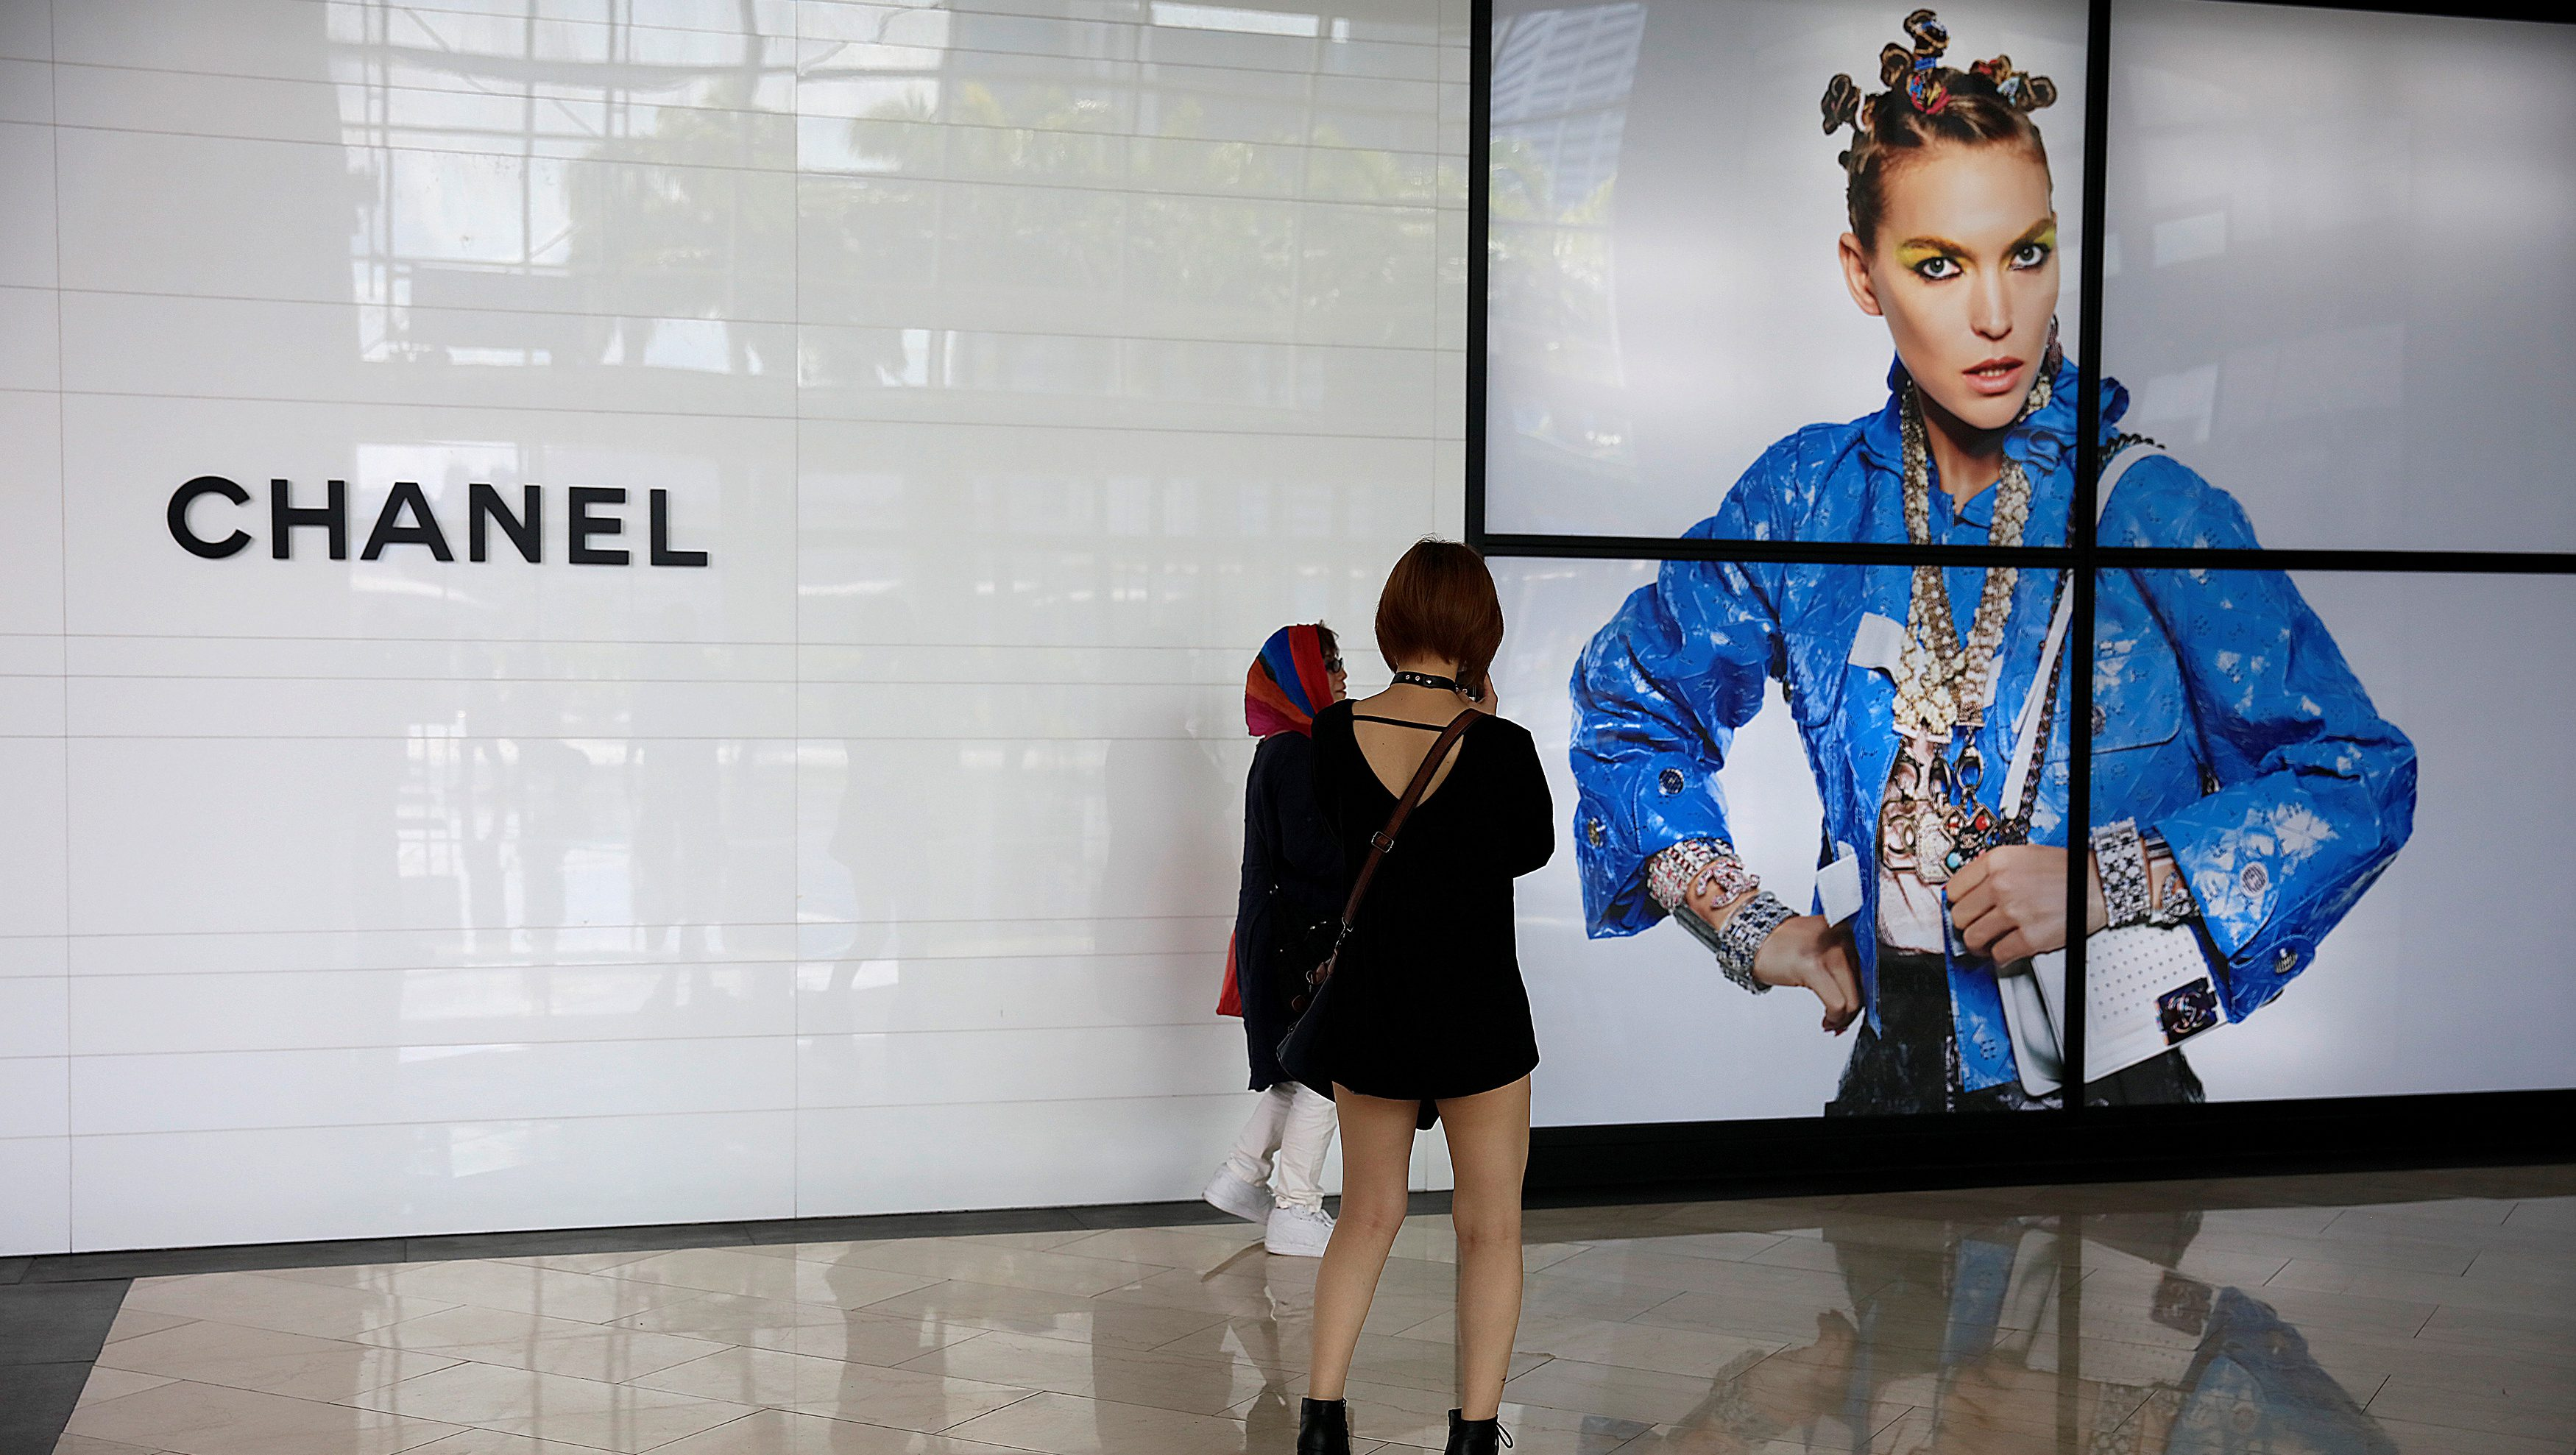 Women take photos in front of a Chanel shop in Singapore May 19, 2017. REUTERS/Thomas White - RTX36K4C